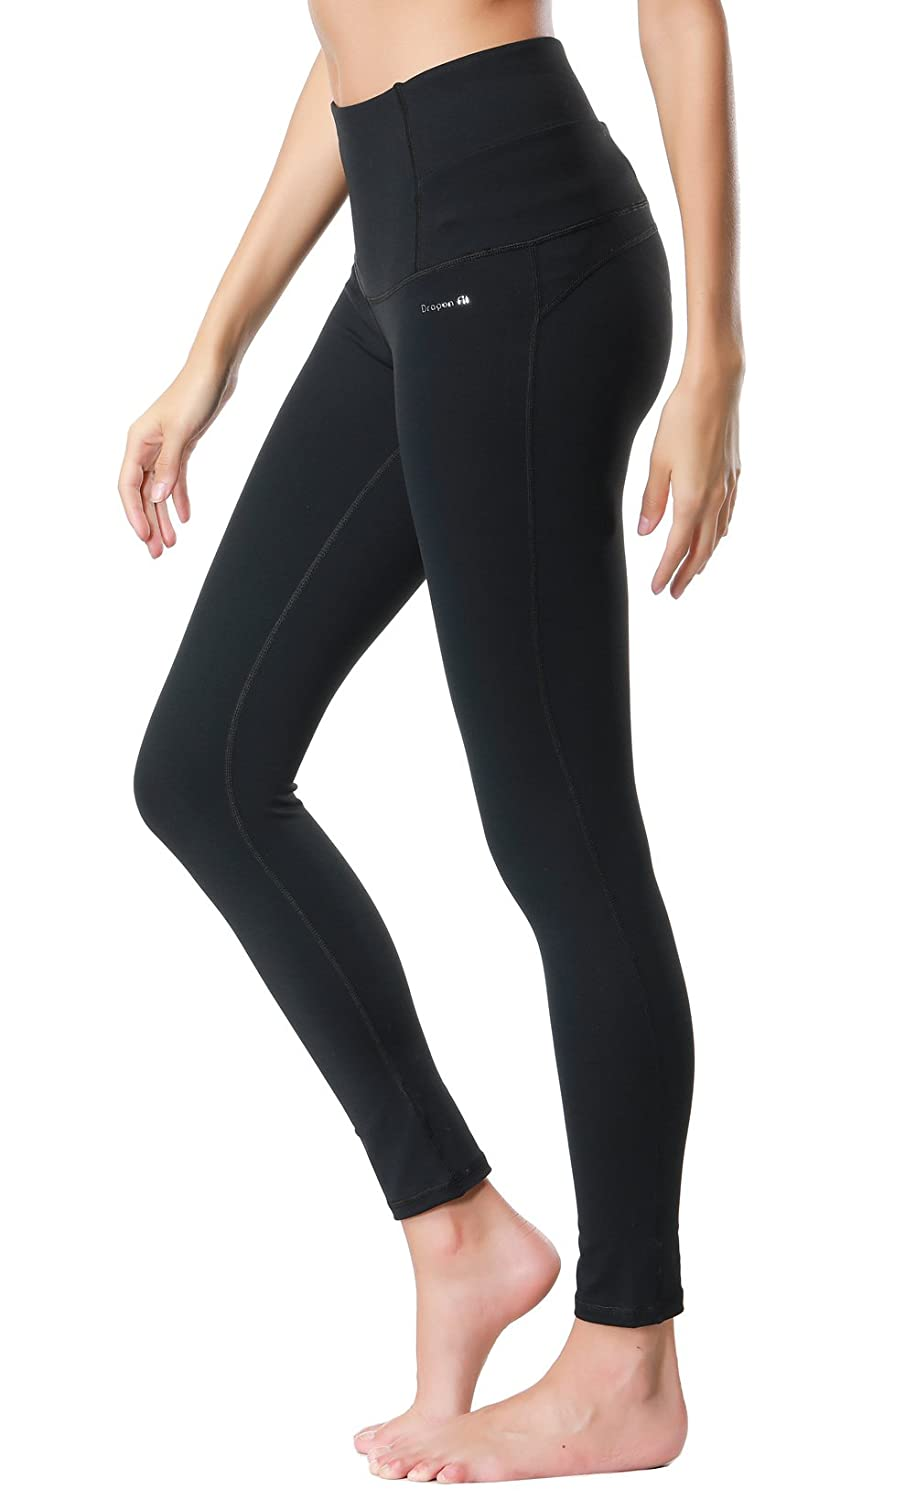 9ab262733f2d1 Amazon.com: Dragon Fit Compression Yoga Pants Power Stretch Workout Leggings  with High Waist Tummy Control: Clothing